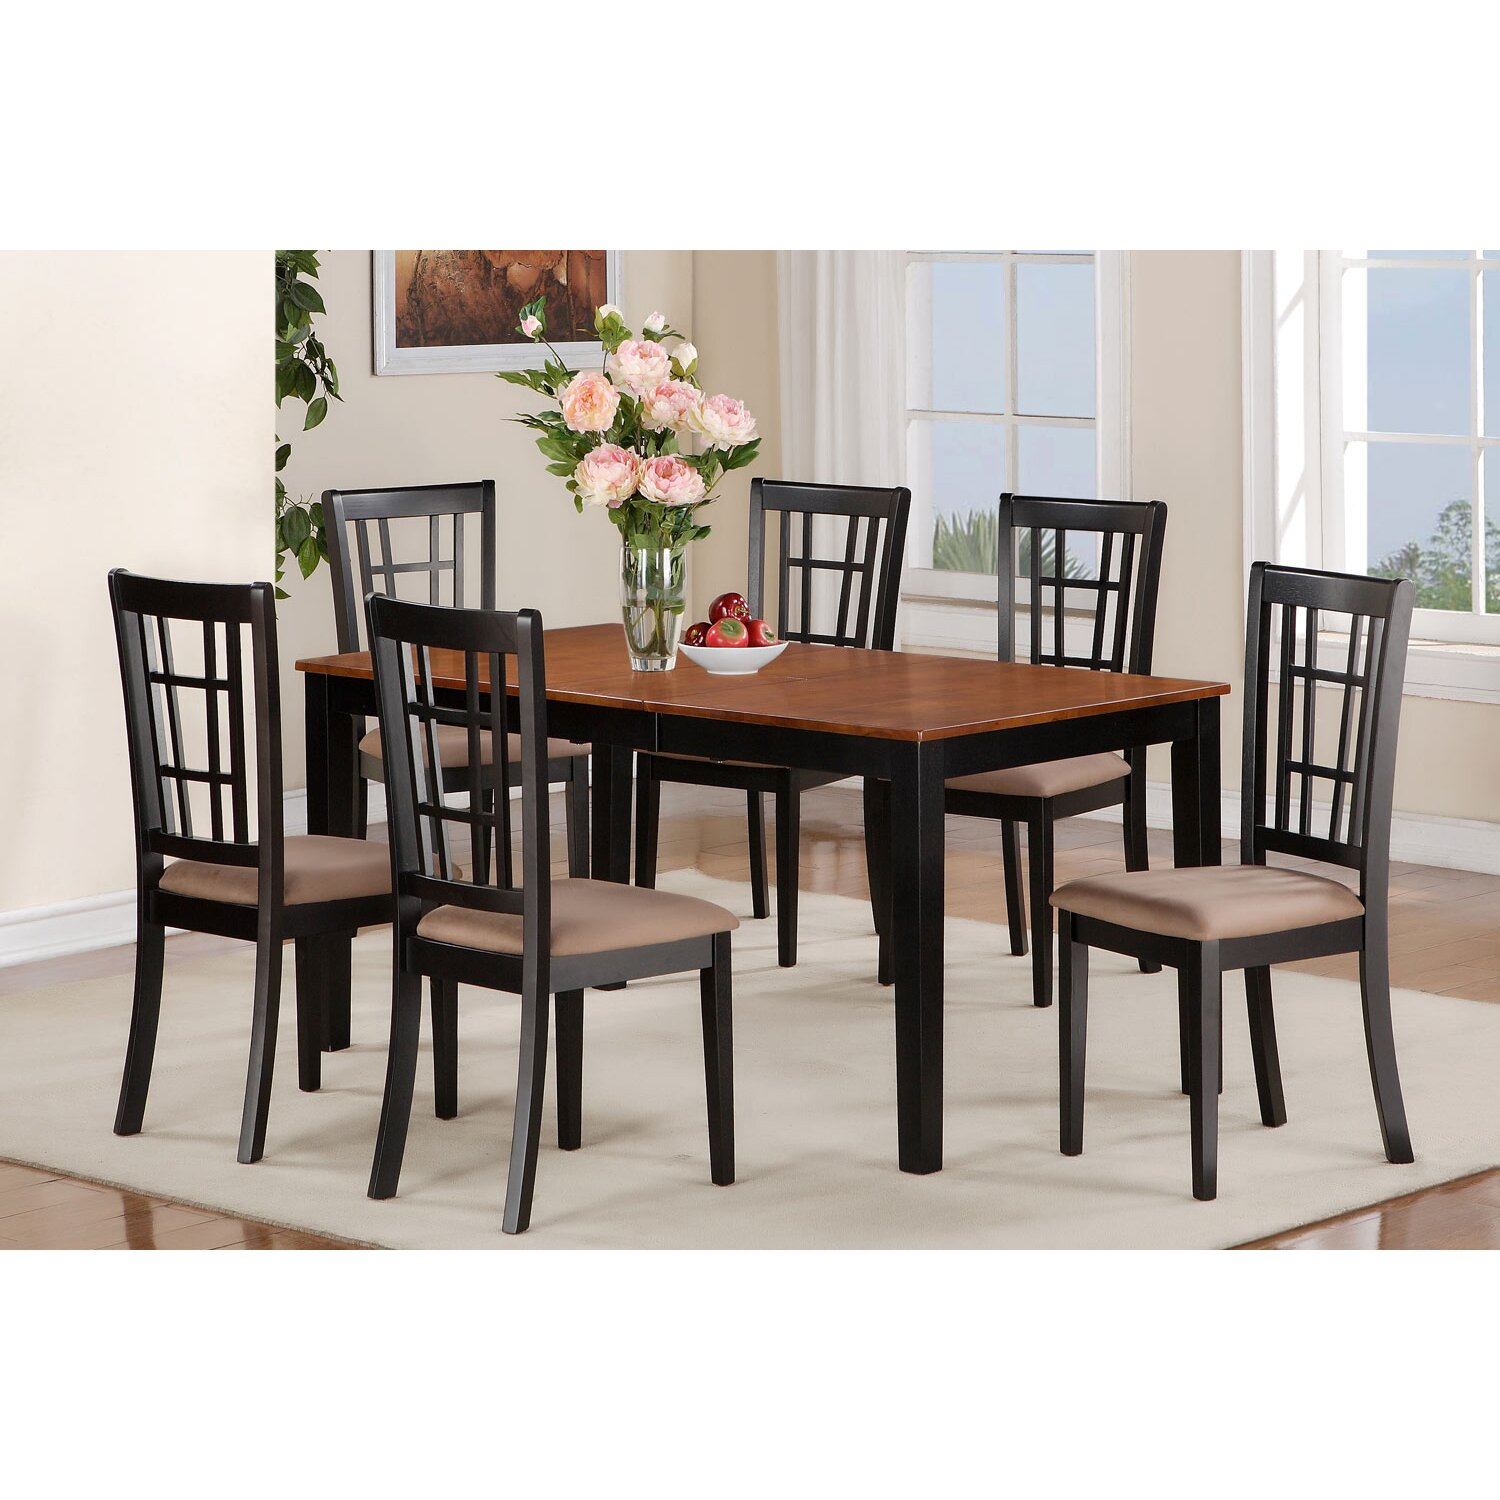 East west nicoli 7 piece dining set reviews wayfair for Kitchenette sets furniture